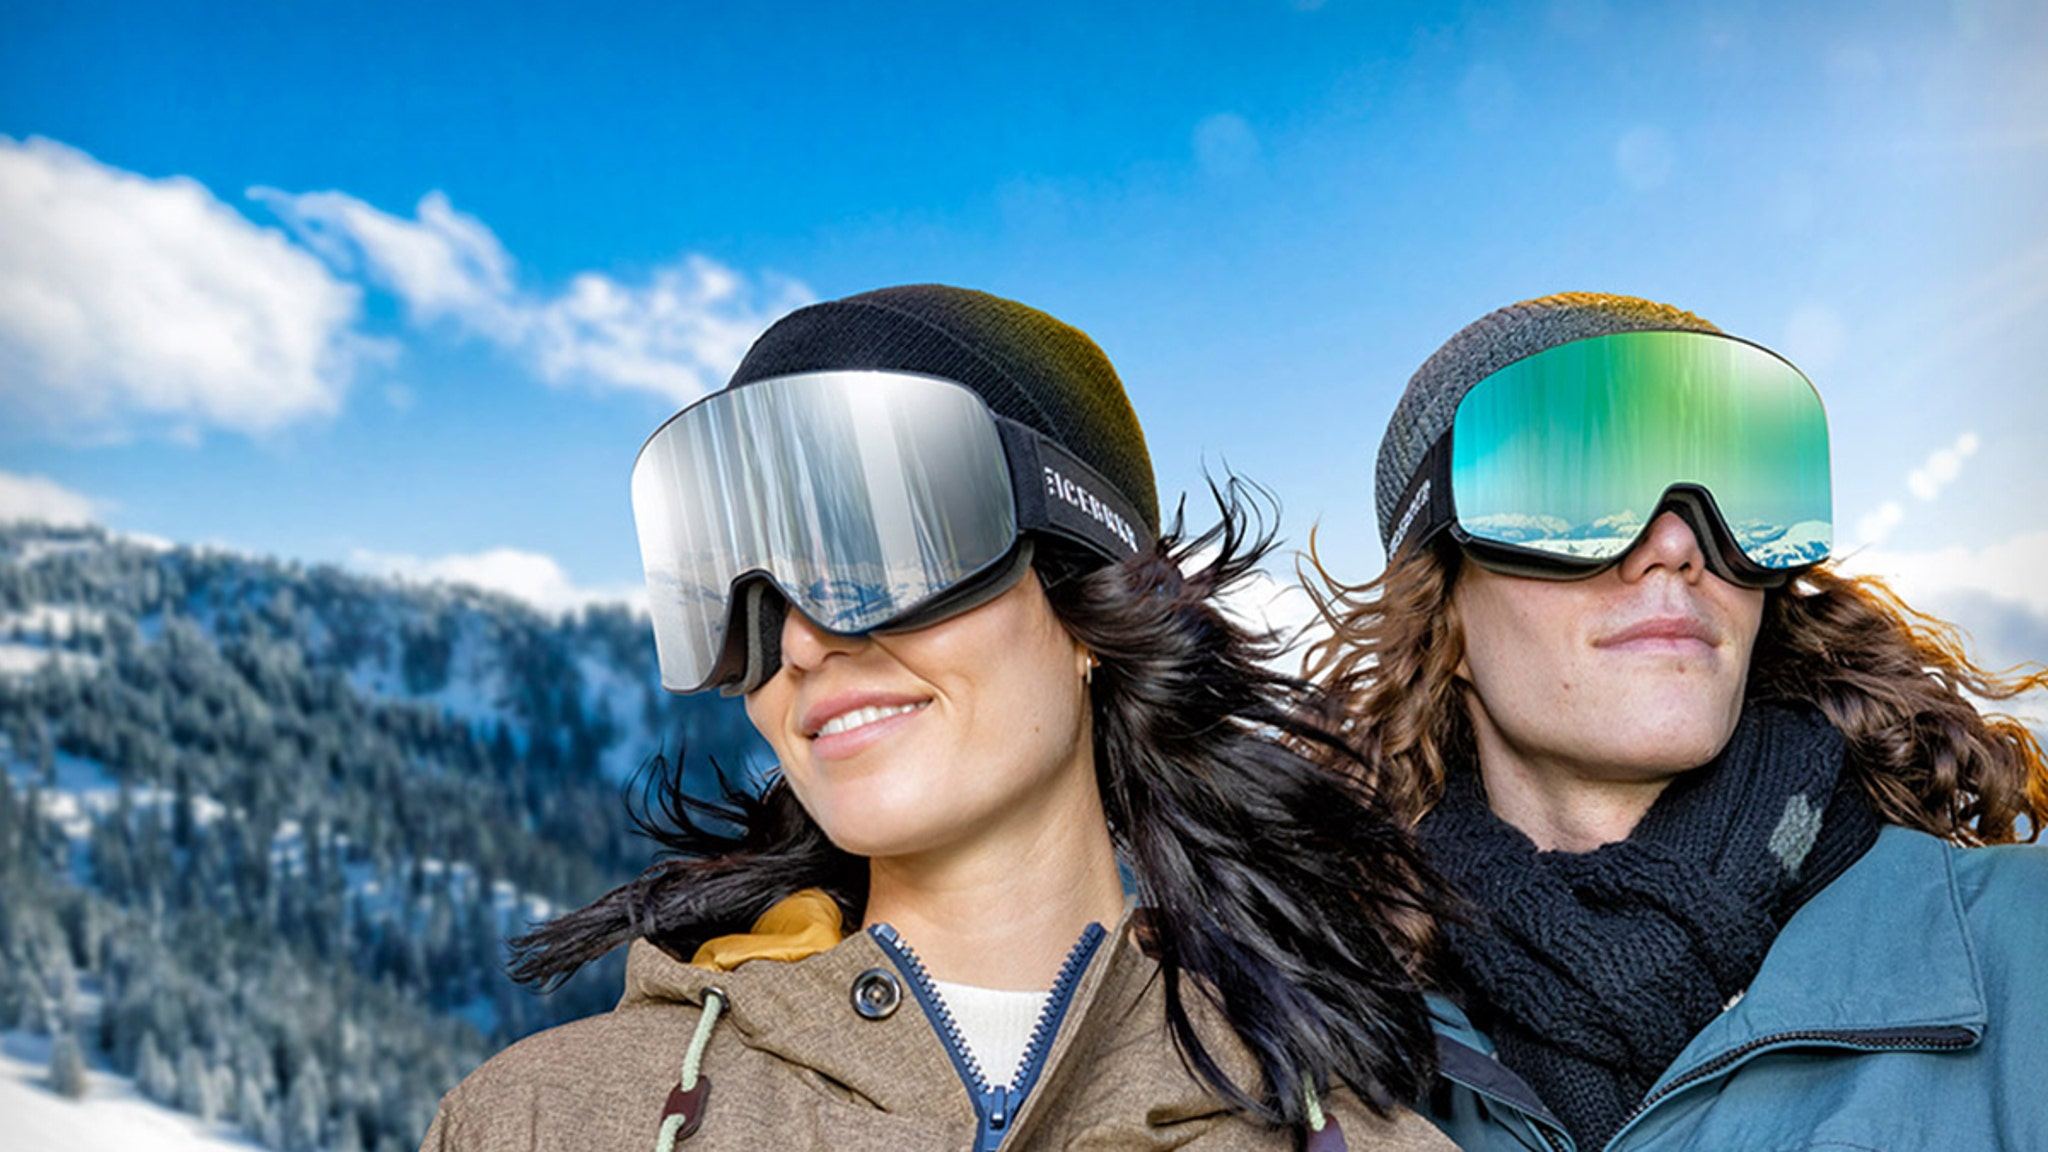 Hittin' the Slopes Snow Goggles to Jam & Shred with ... These Can Do It All!!!